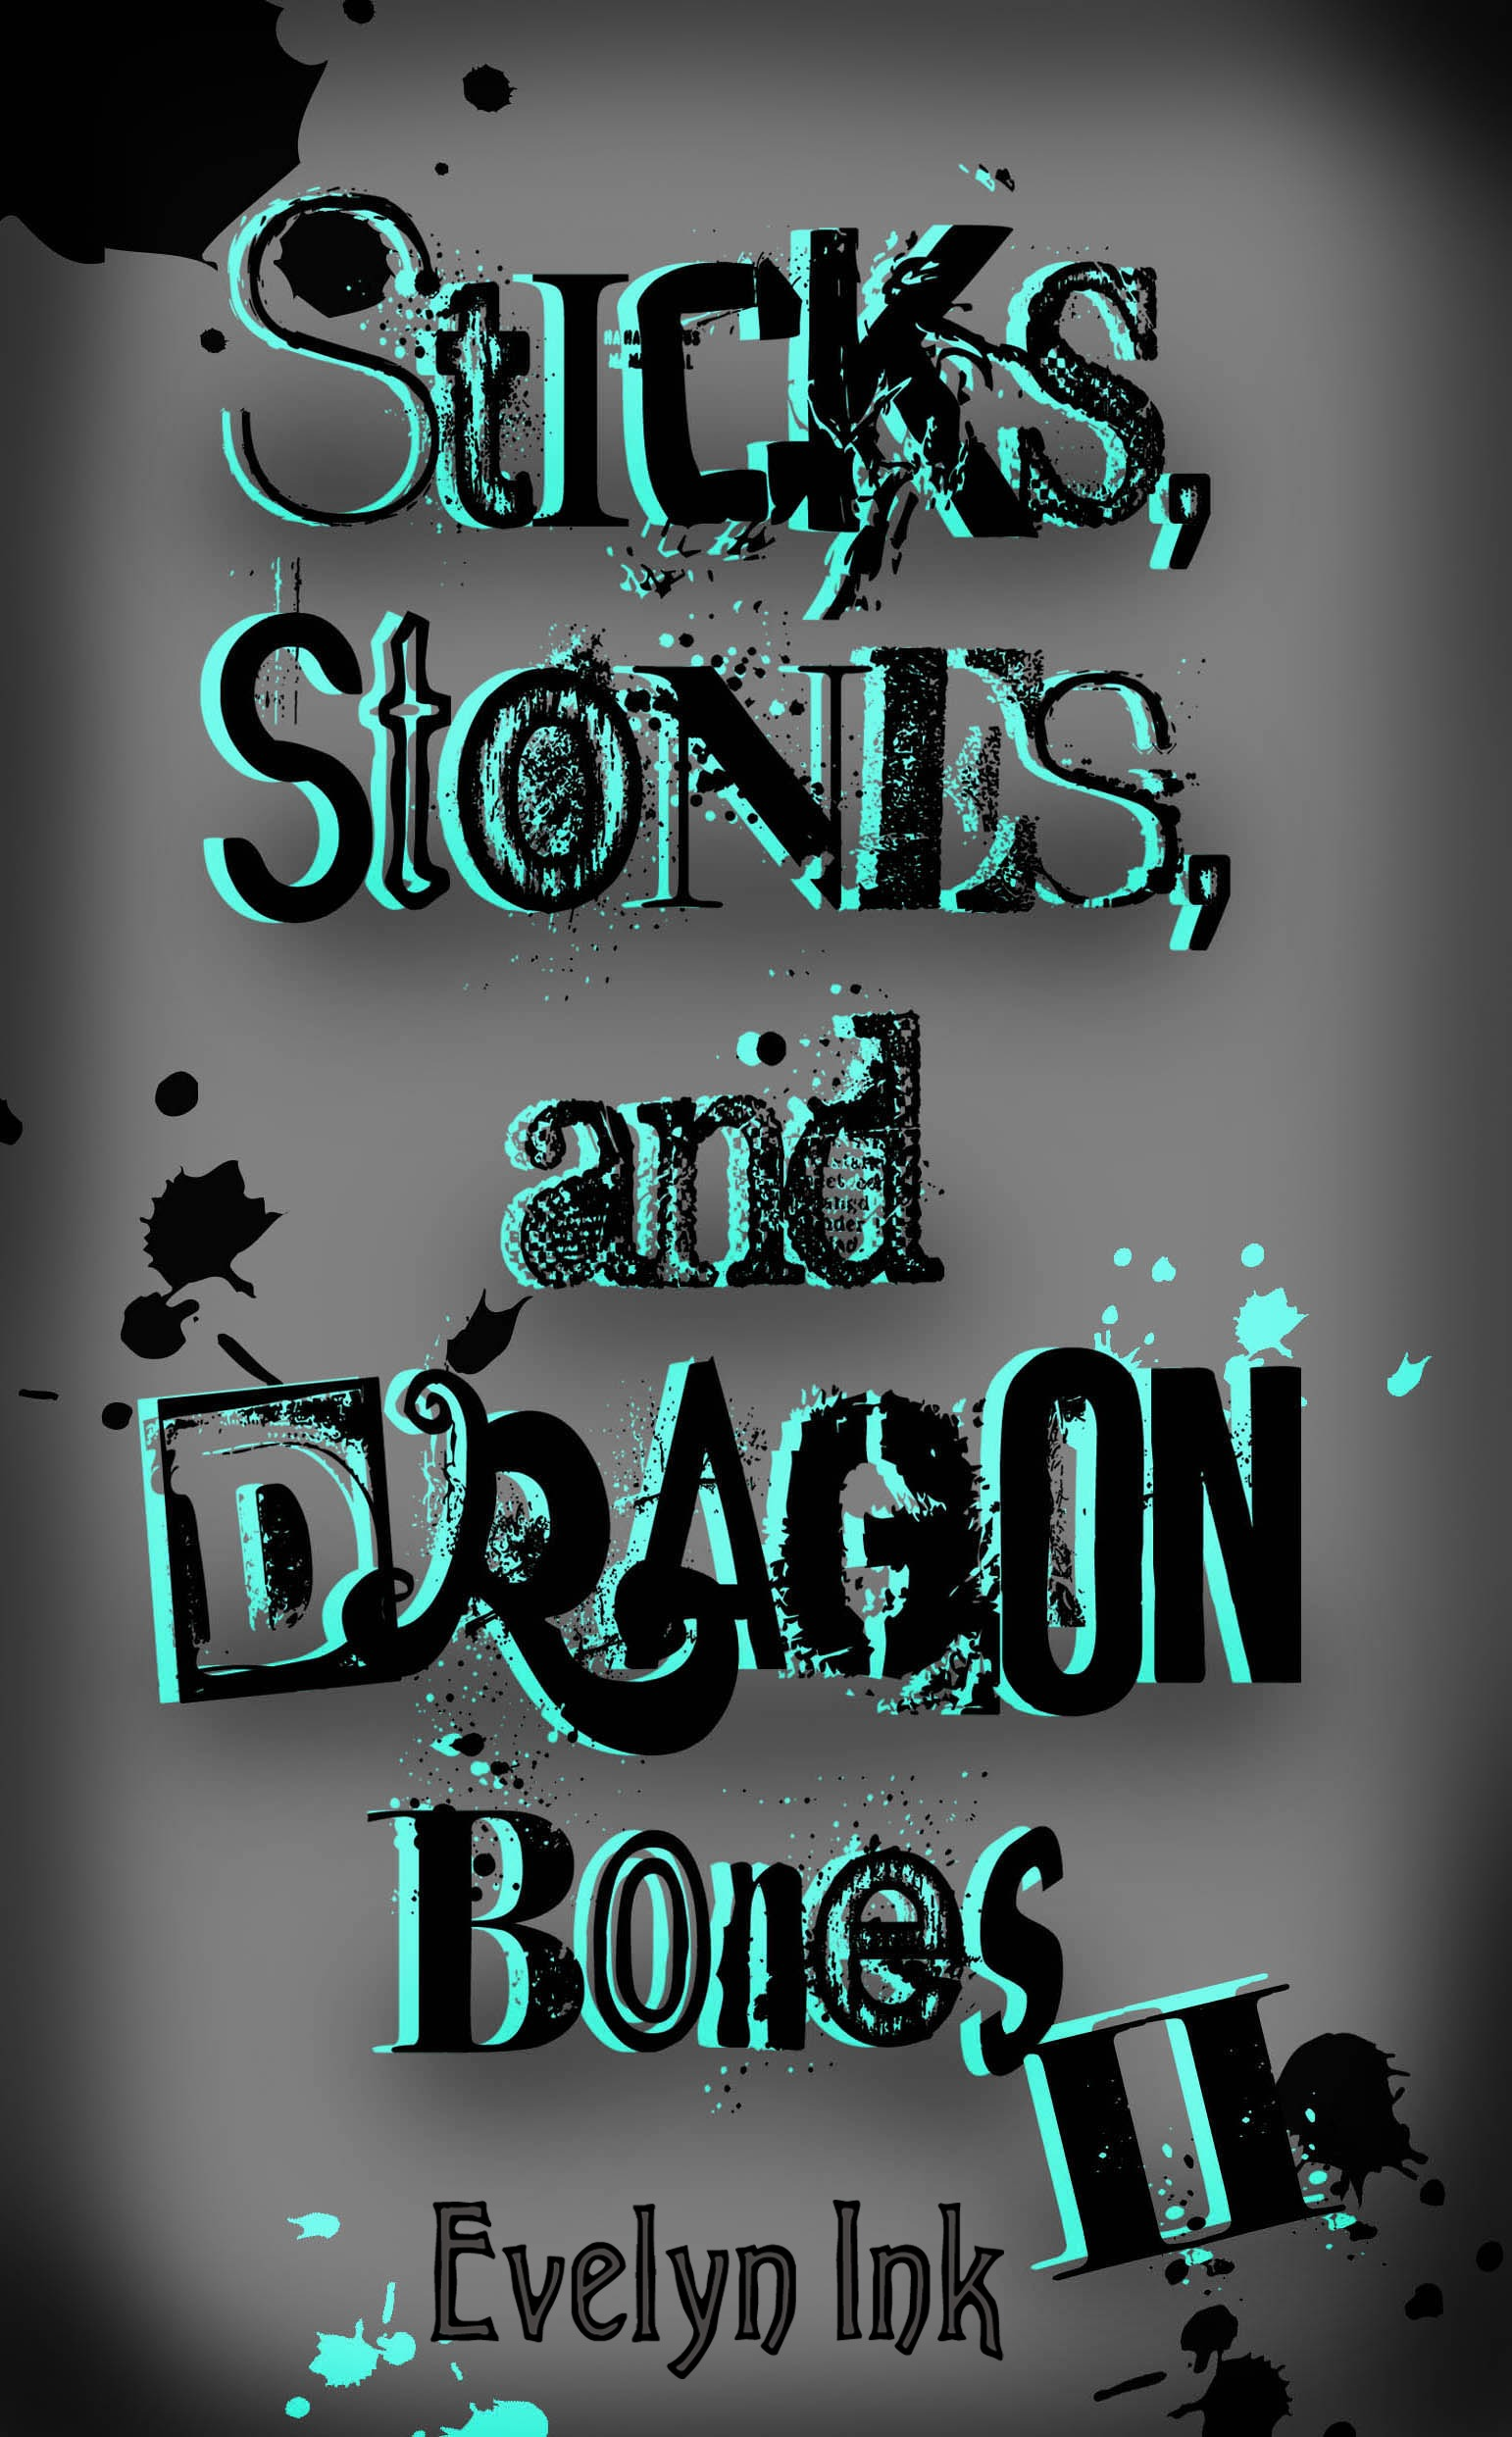 Sticks, Stones, and Dragon Bones II